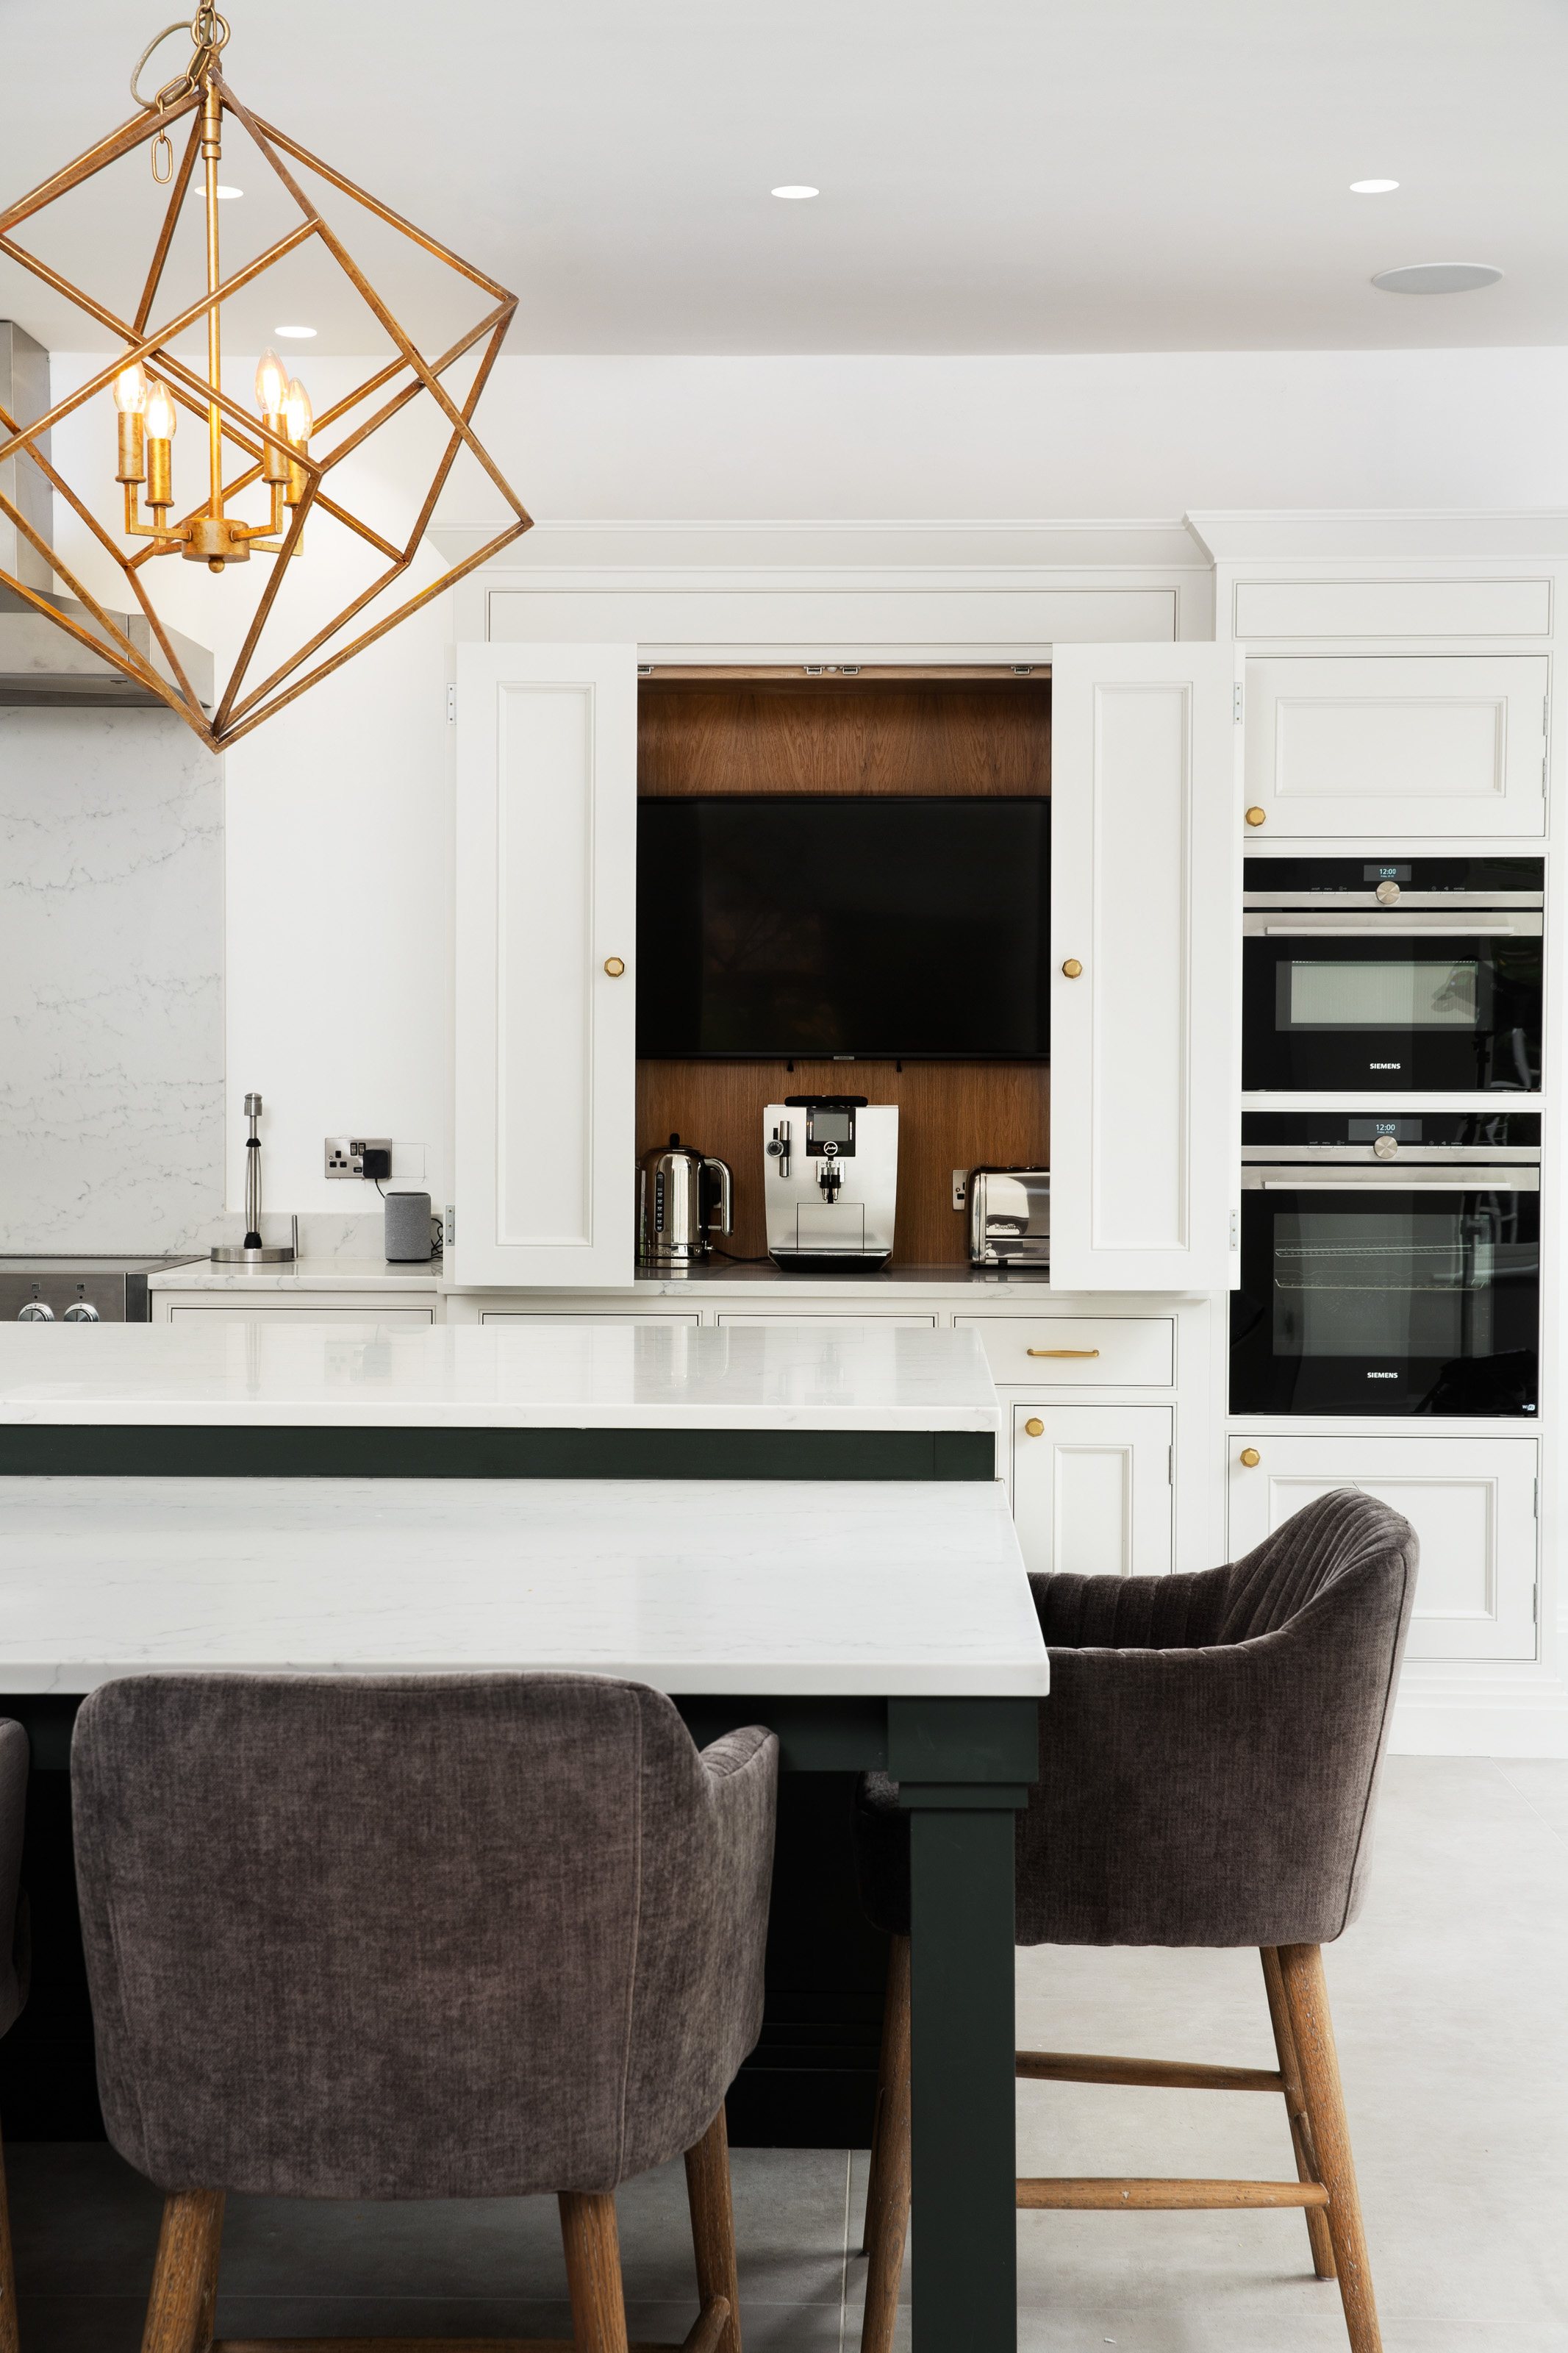 Watsons_Kitchens_Harrogate-7